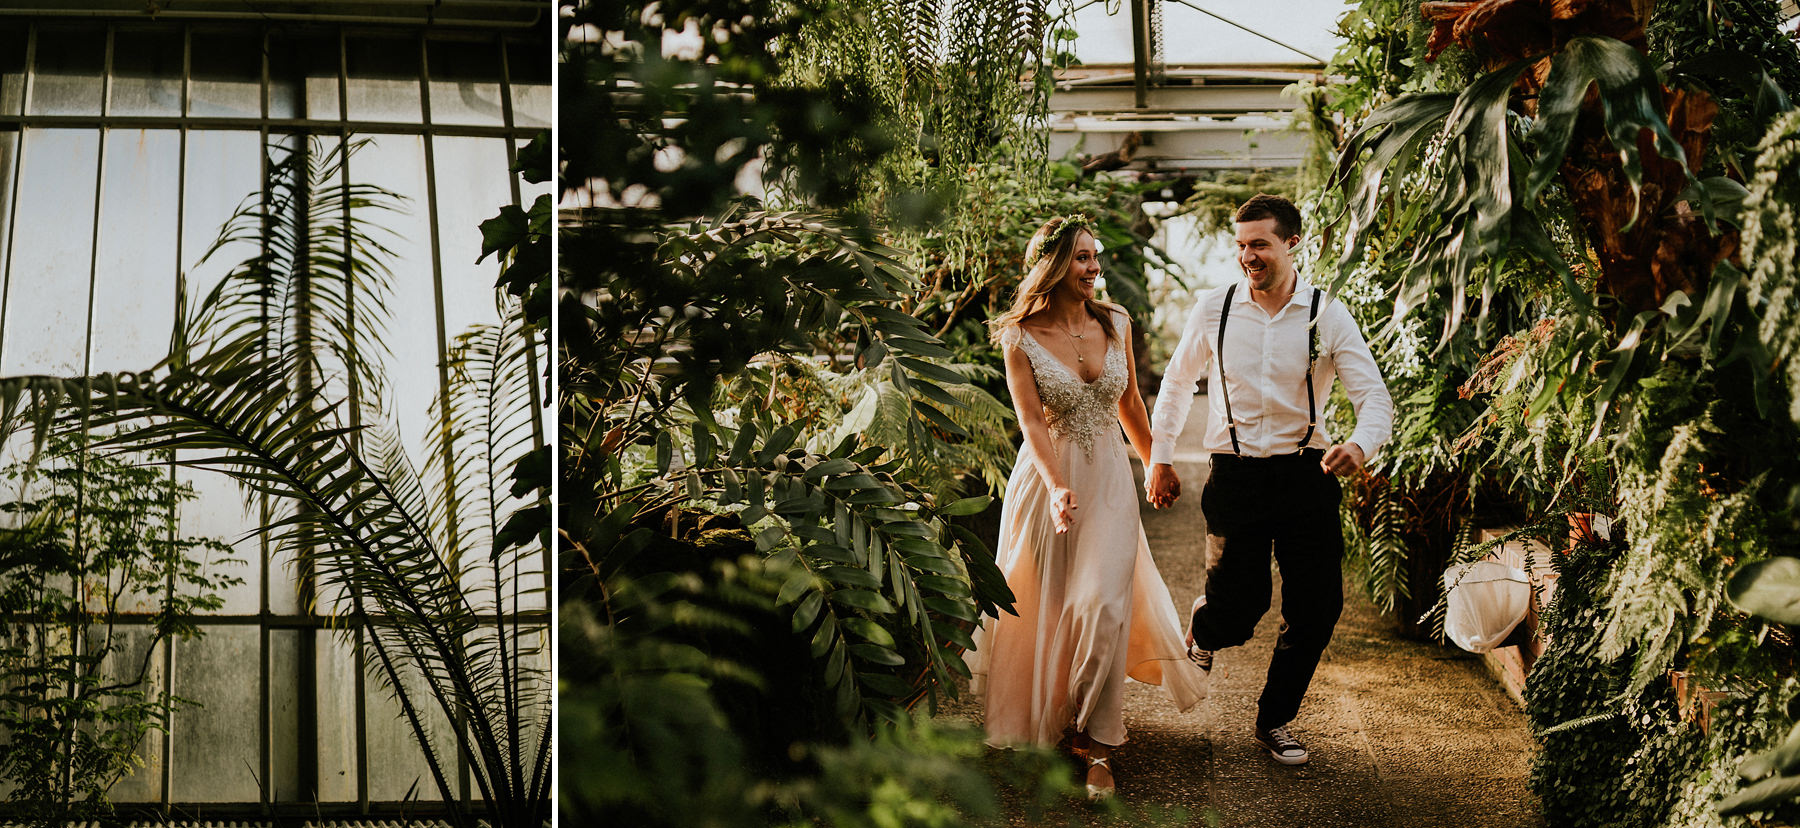 Wedding photo session in the botanical garden - Krakow photographer